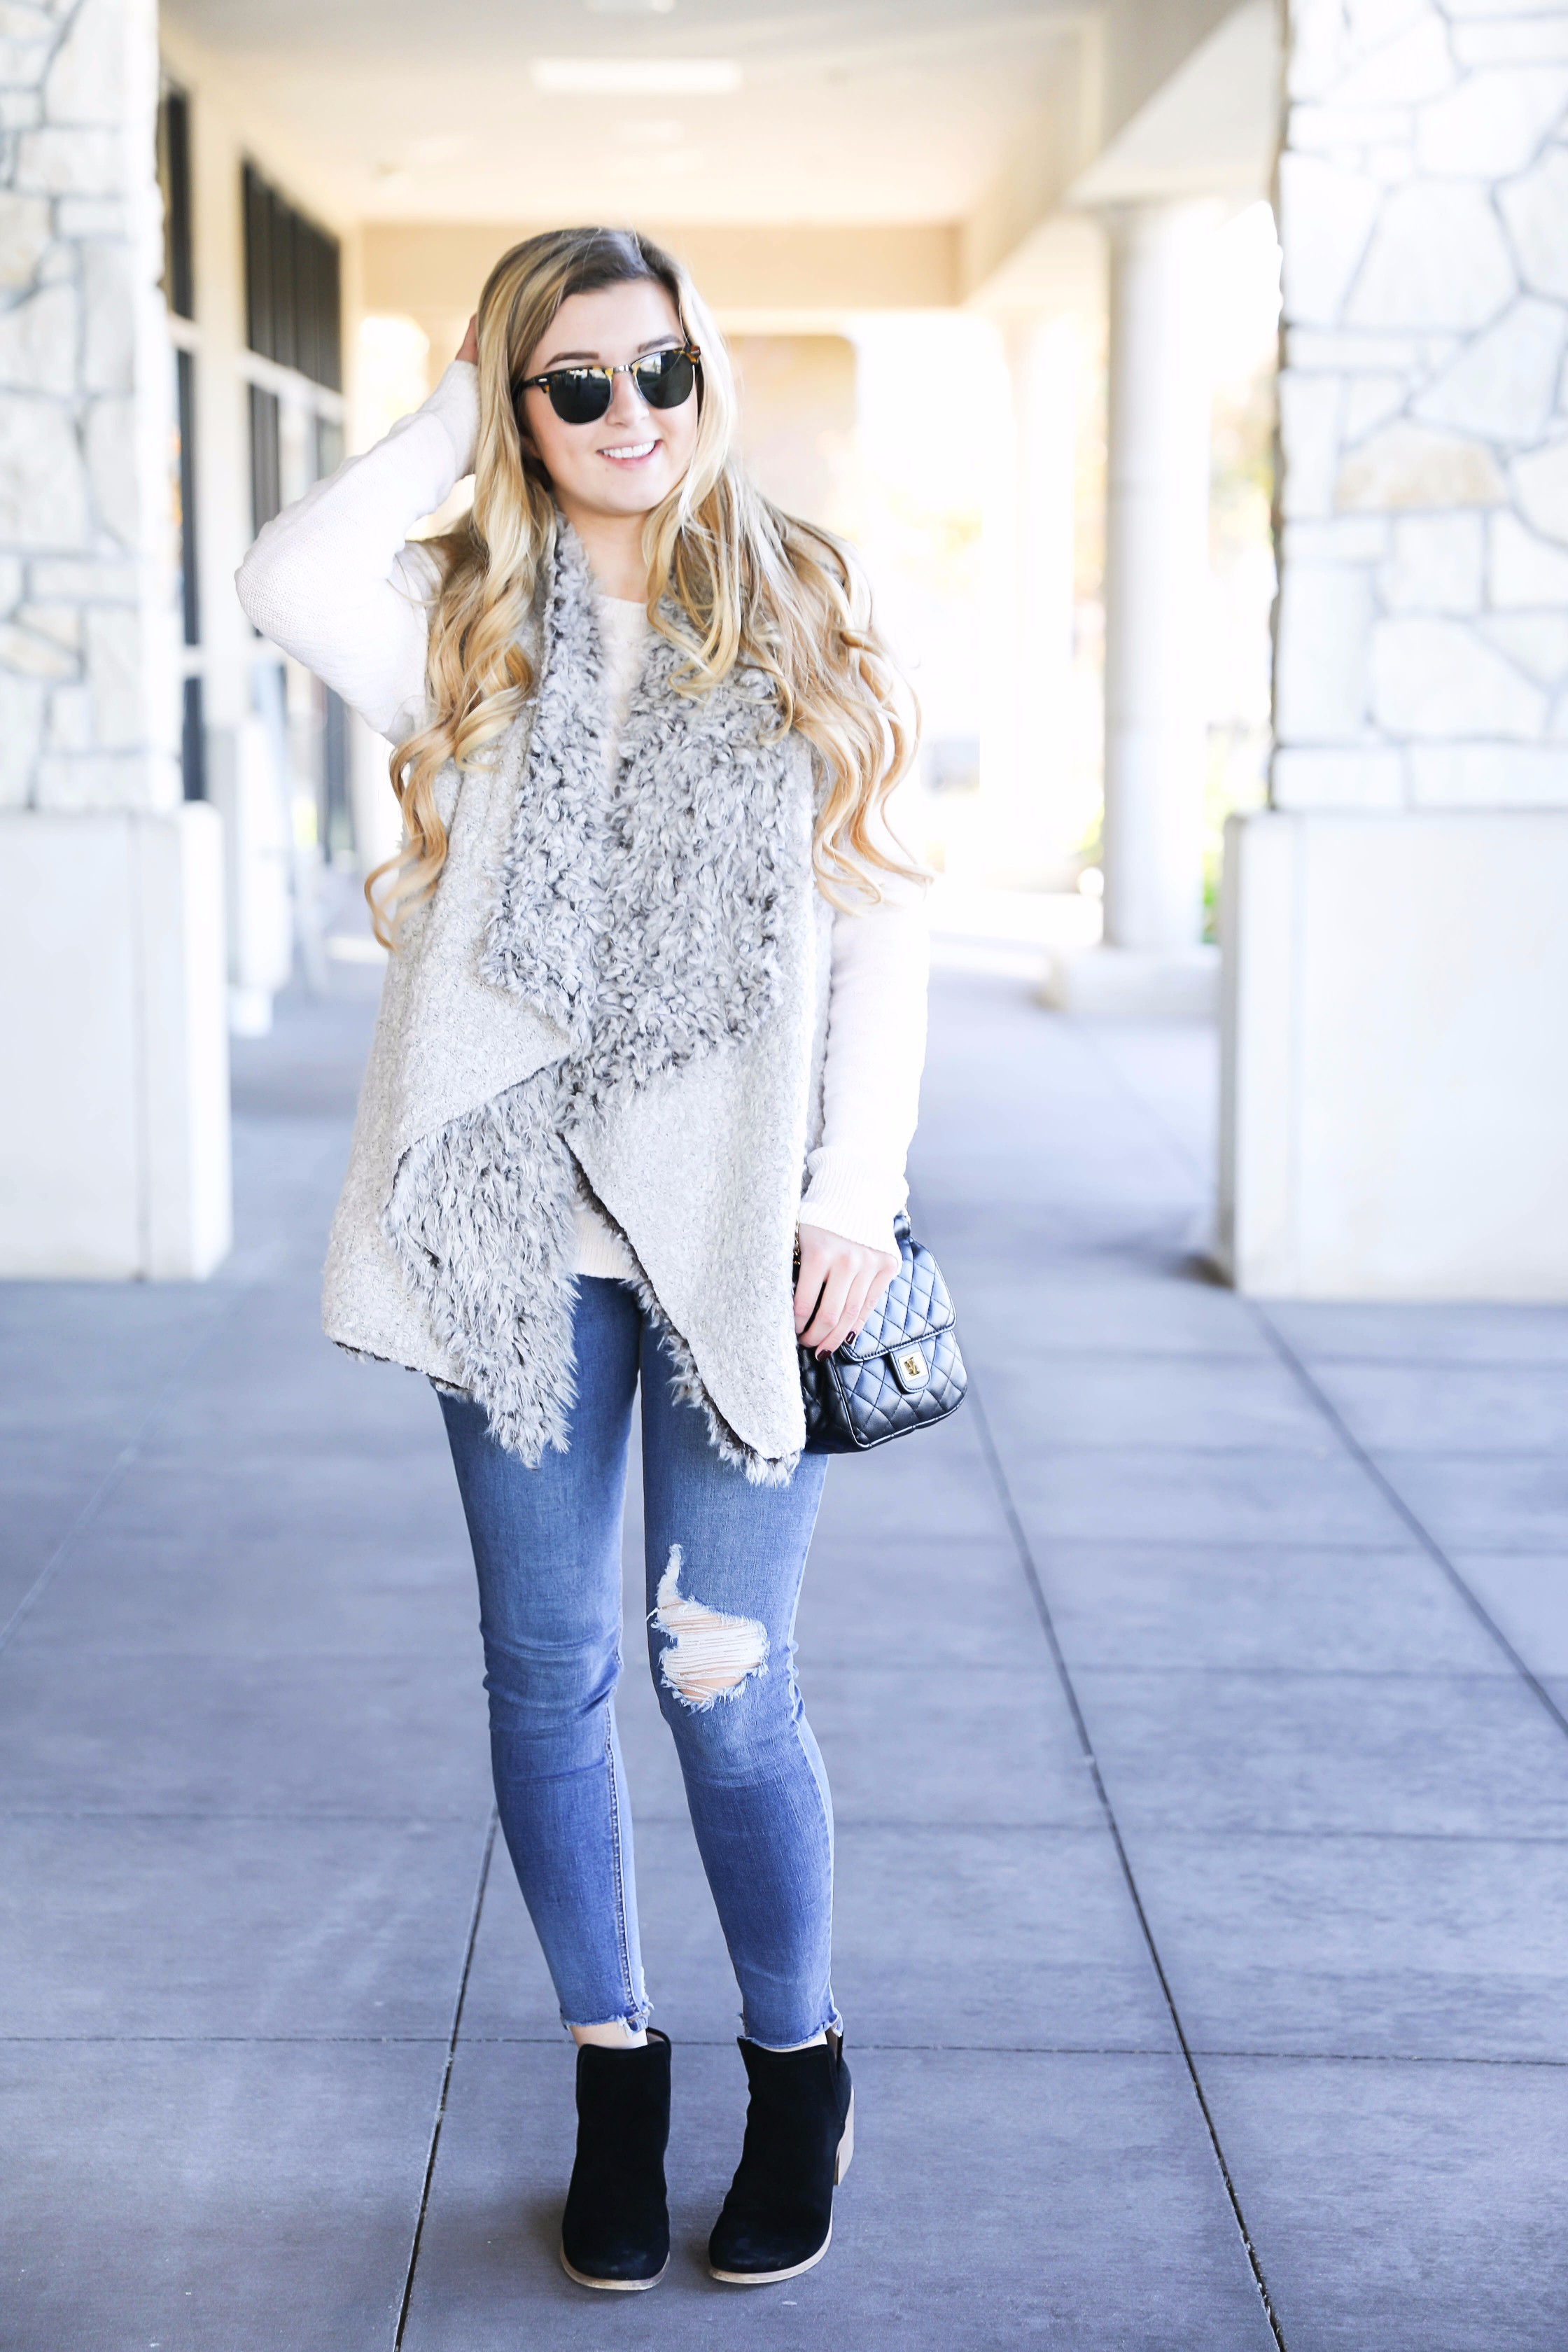 Fuzzy vest with cable knit sweater! Paired with my favorite ripped jeans and clubmaster sunglasses. These black booties are the best! Details on fashion blog daily dose of charm by lauren lindmark